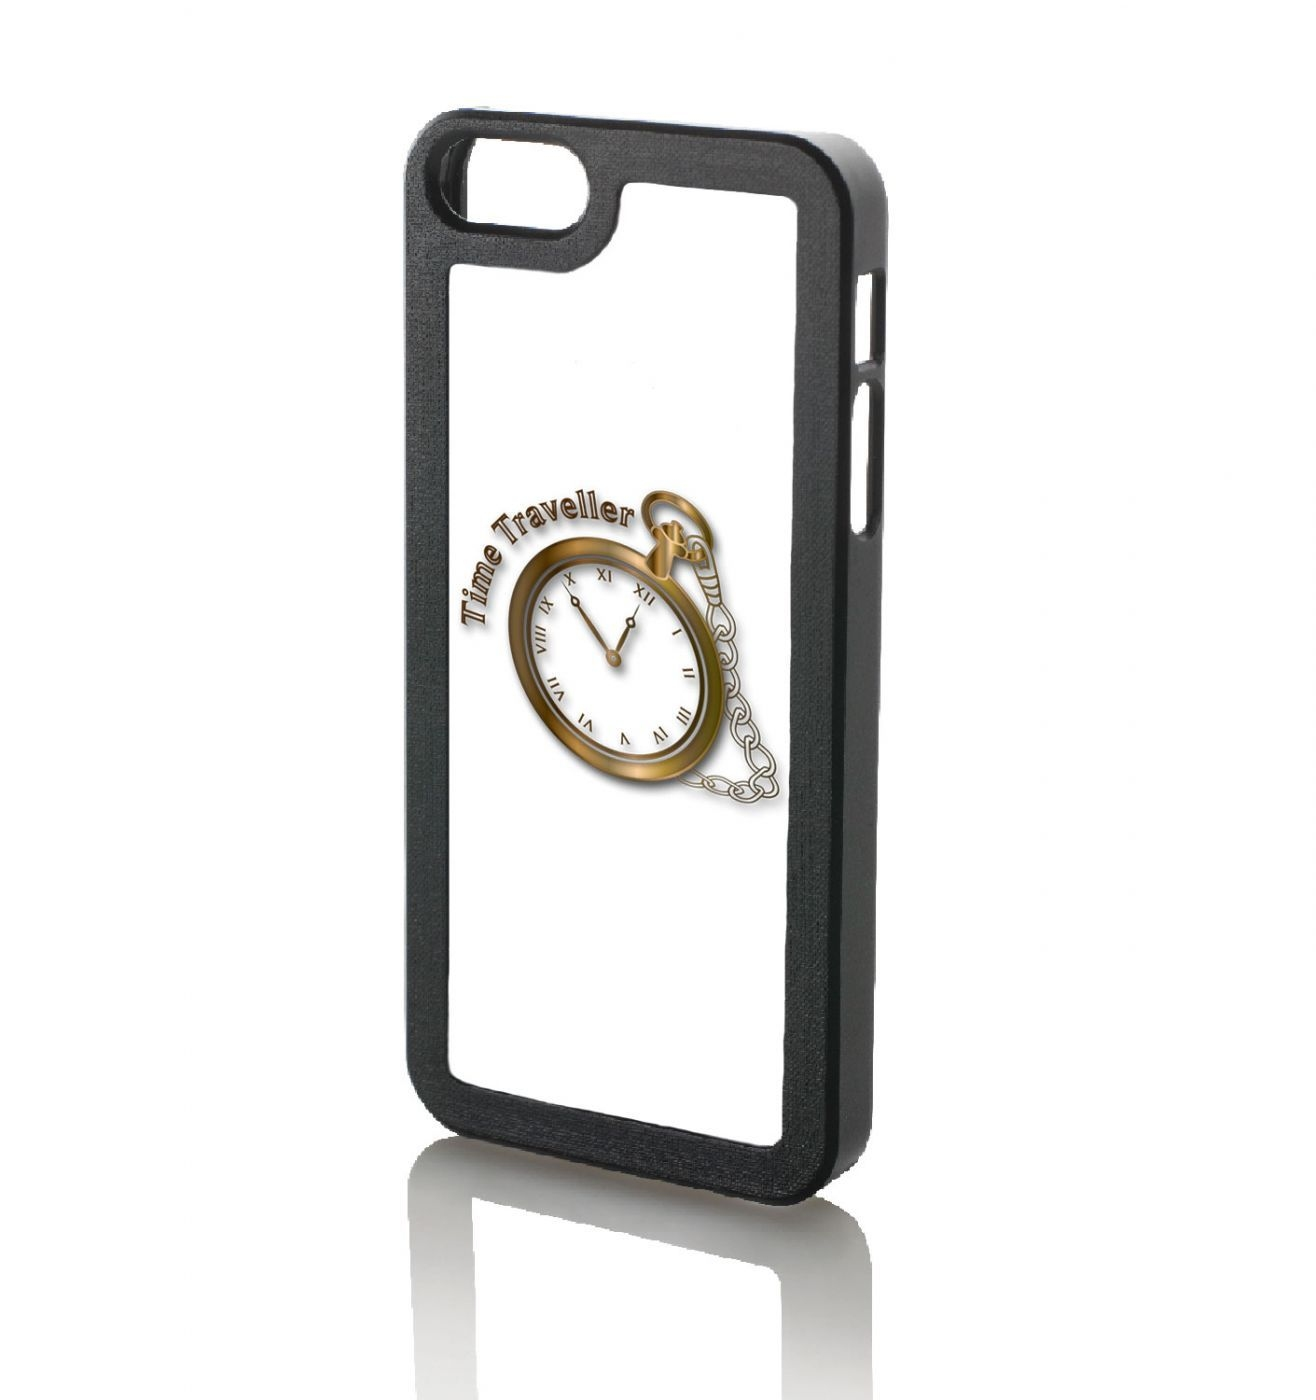 Time Traveller Pocket Watch iPhone 5/5S phone case